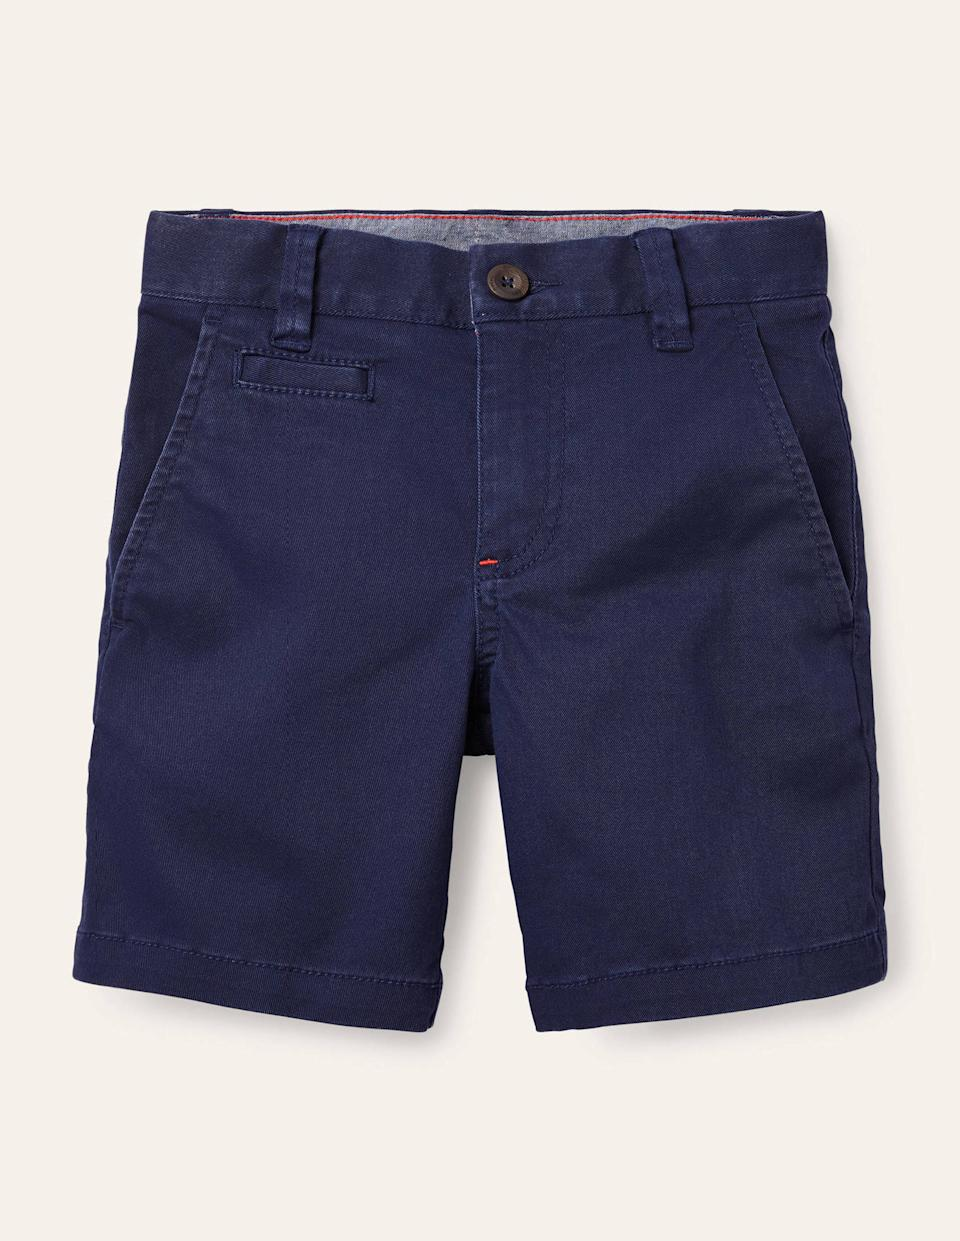 Navy chino shorts from Boden.